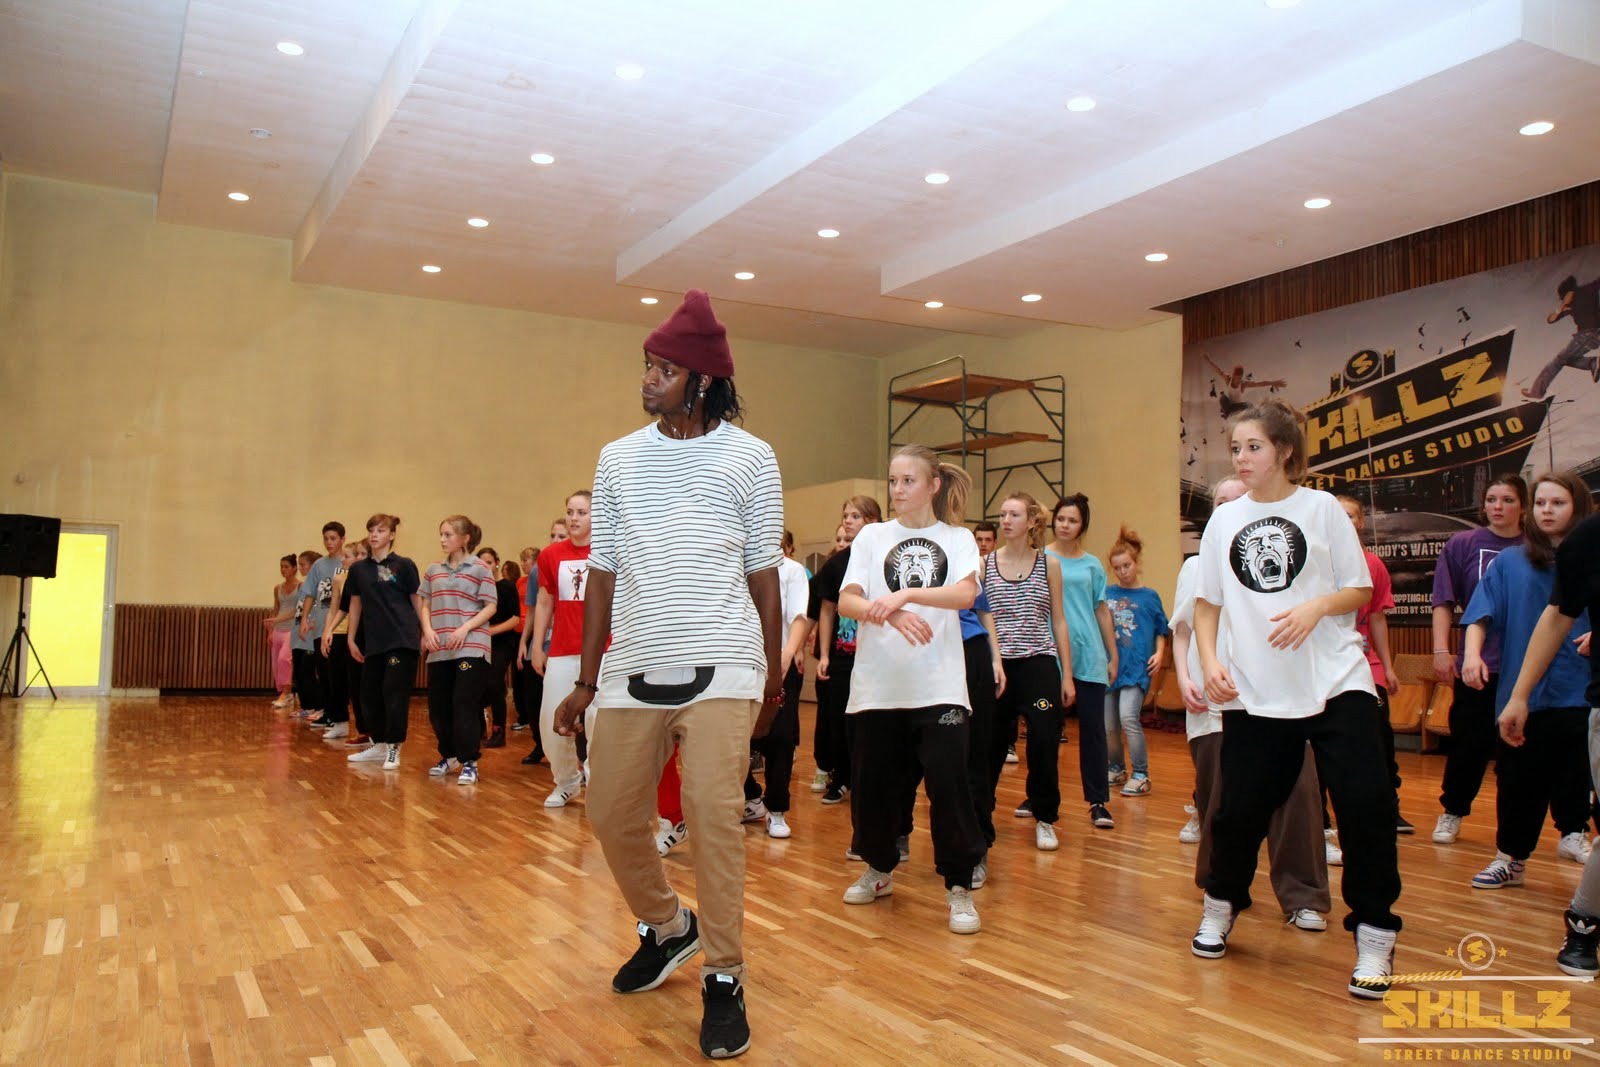 Hip- Hop workshop with Shaadow (UK) - IMG_1755.jpg